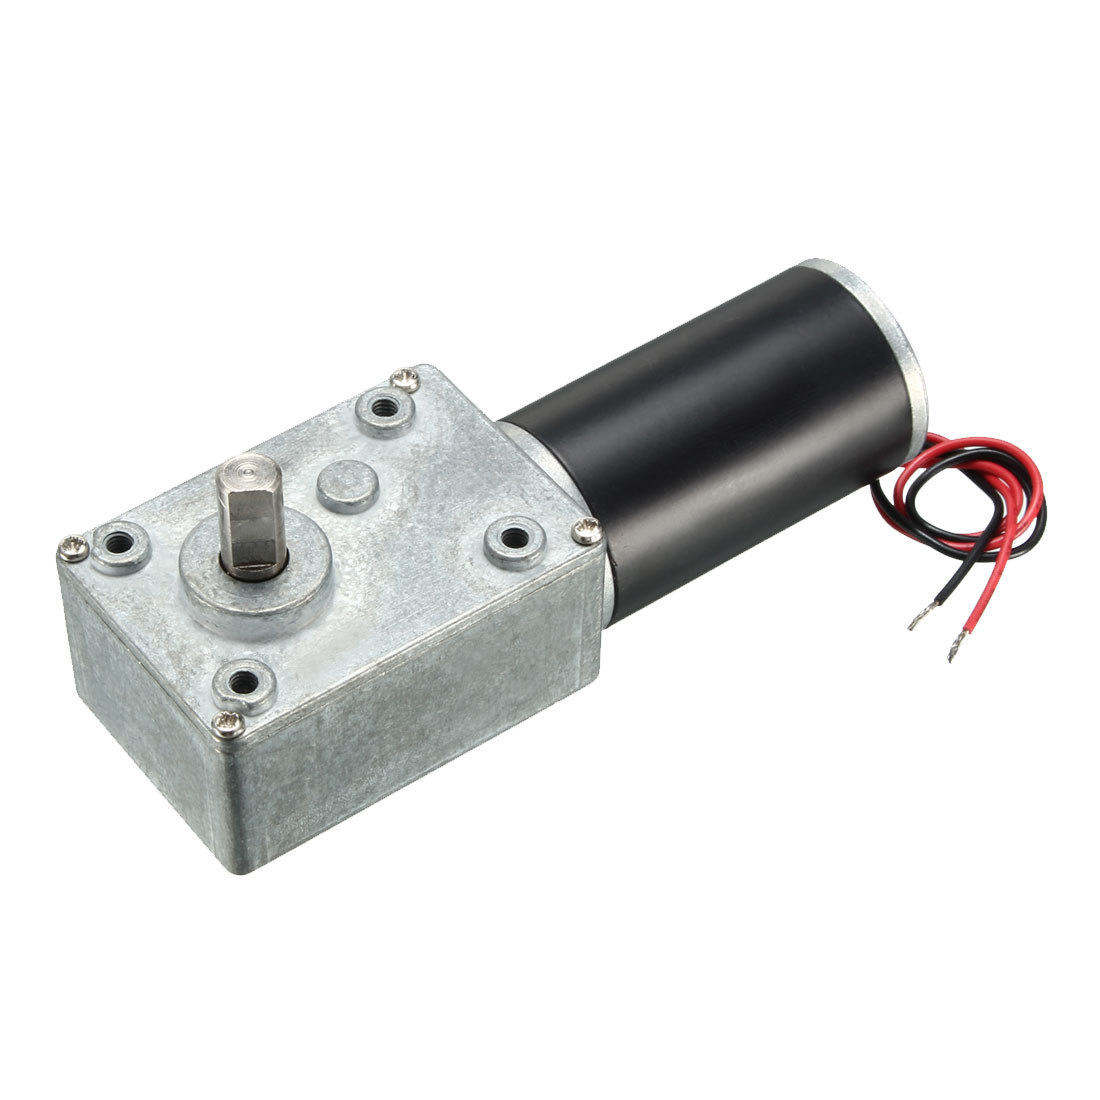 27RPM DC 24V 8mm Dia Shaft 2 Wires Gearbox Electric Geared Motor